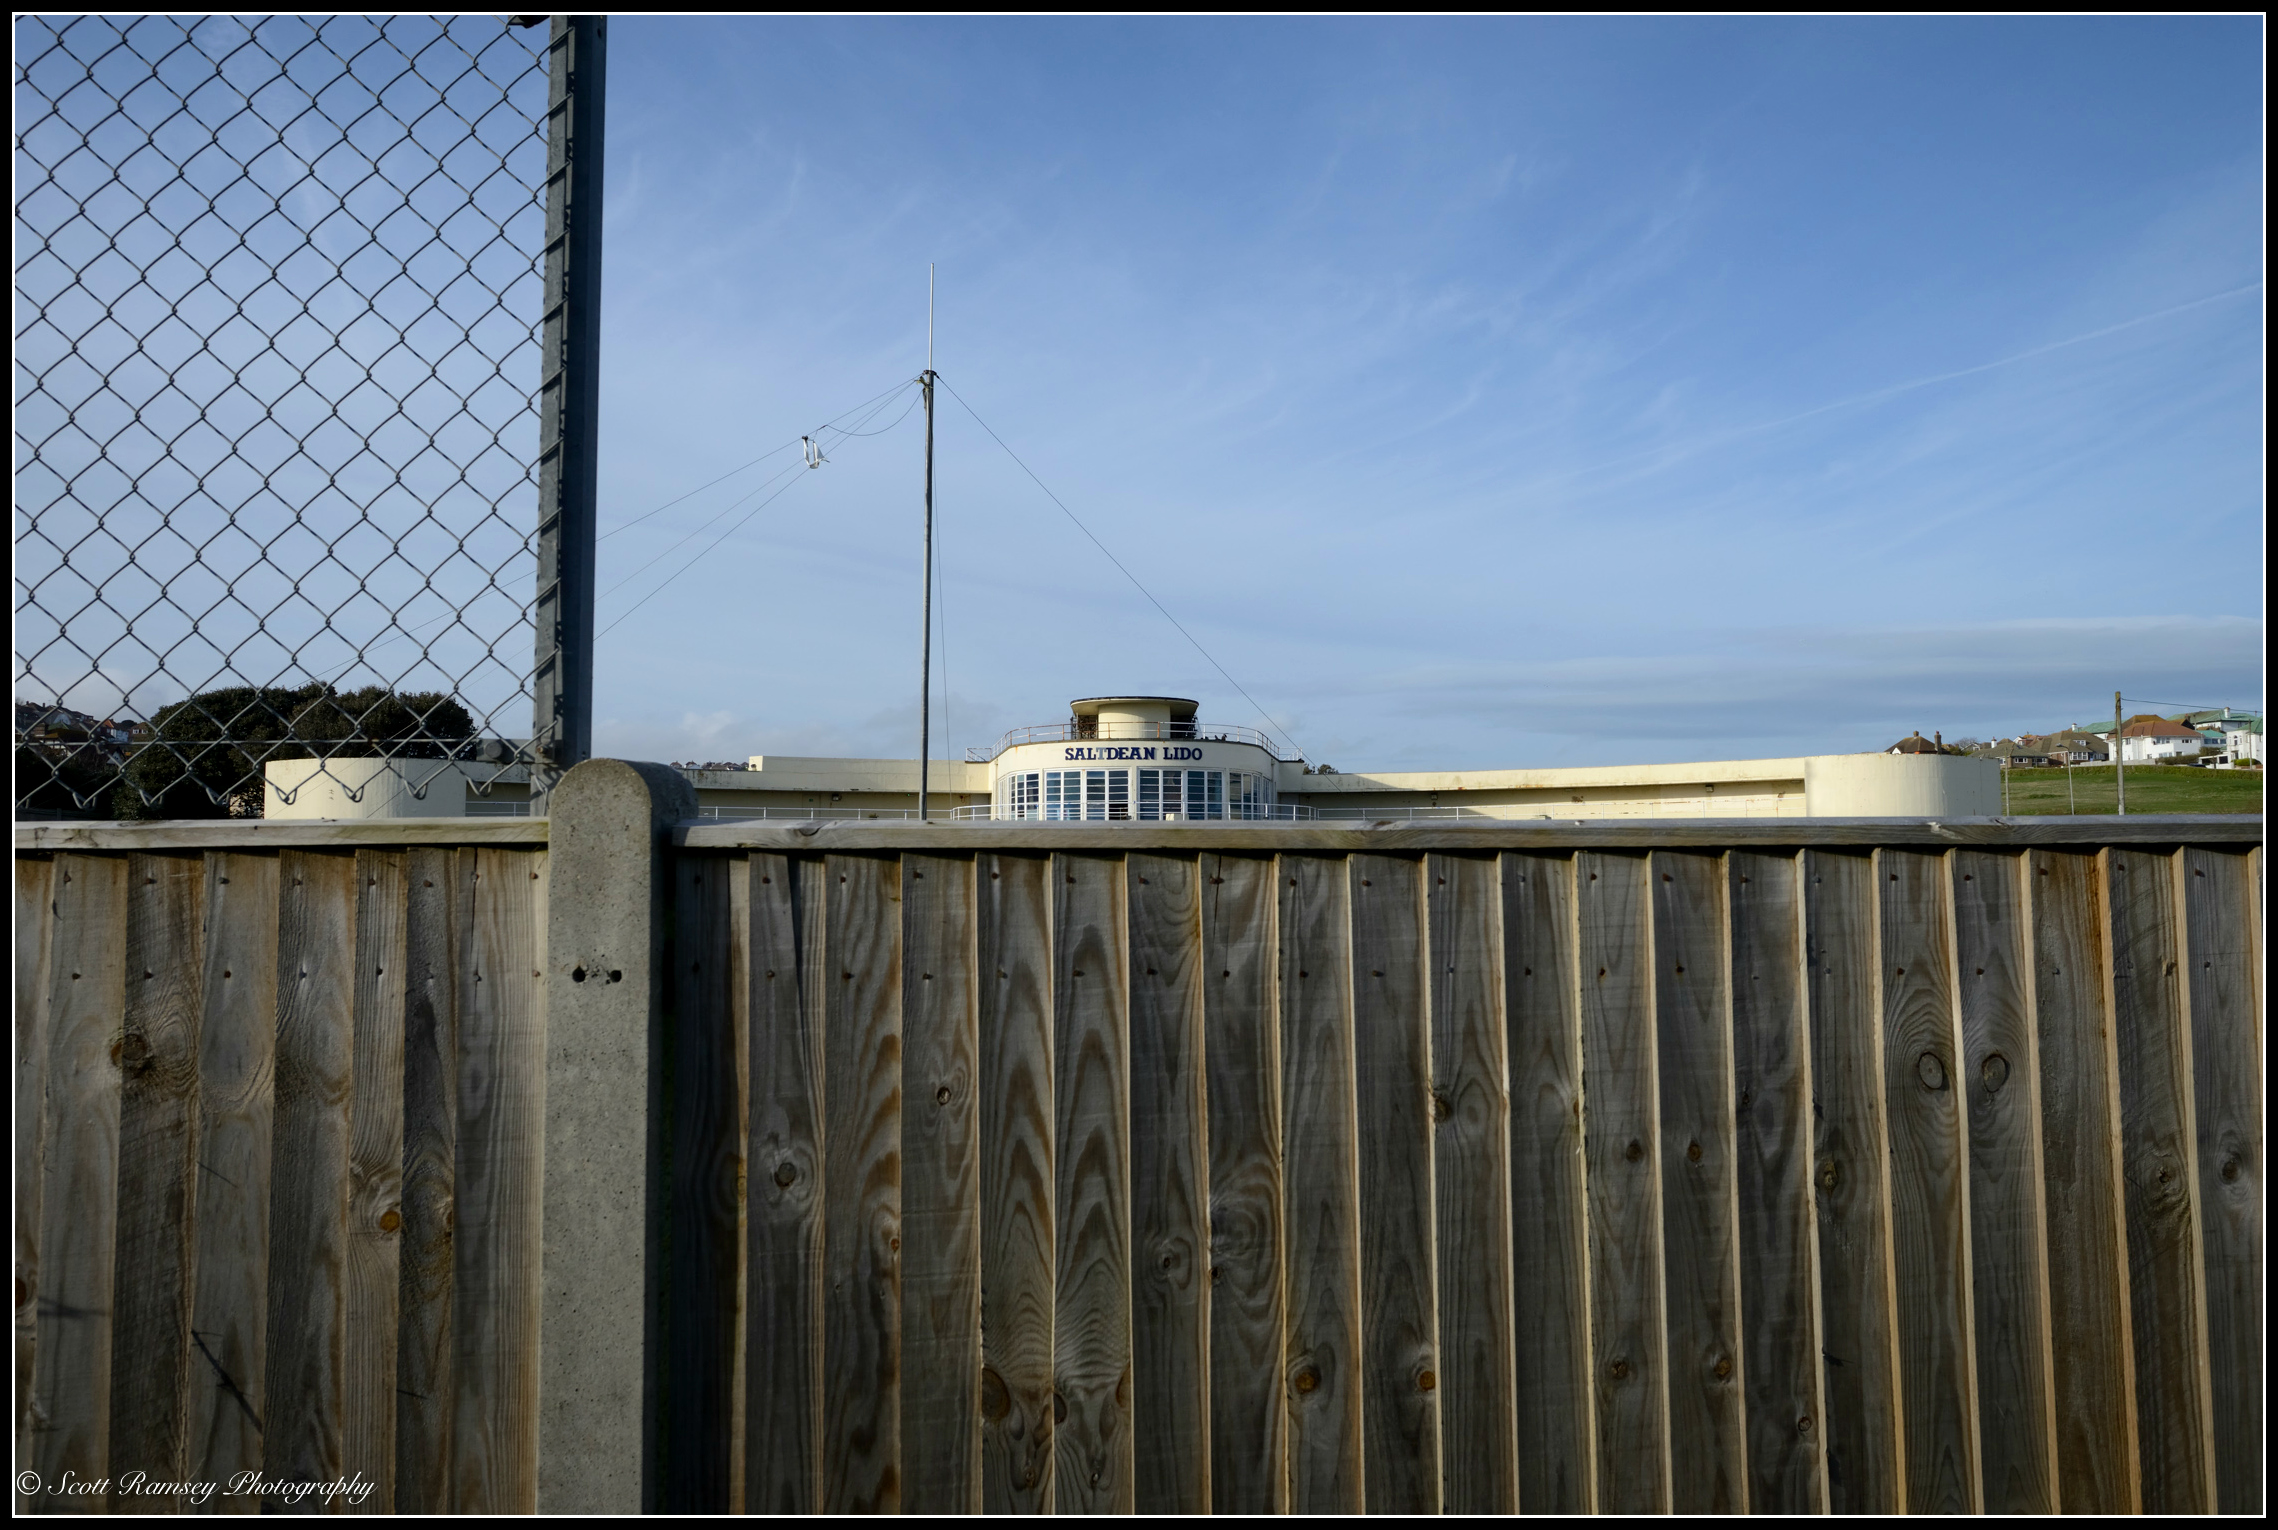 For the last few years this is one of the only views local residents have had of Saltdean Lido however with work starting soon this will hopefully soon change. © Scott Ramsey Photography